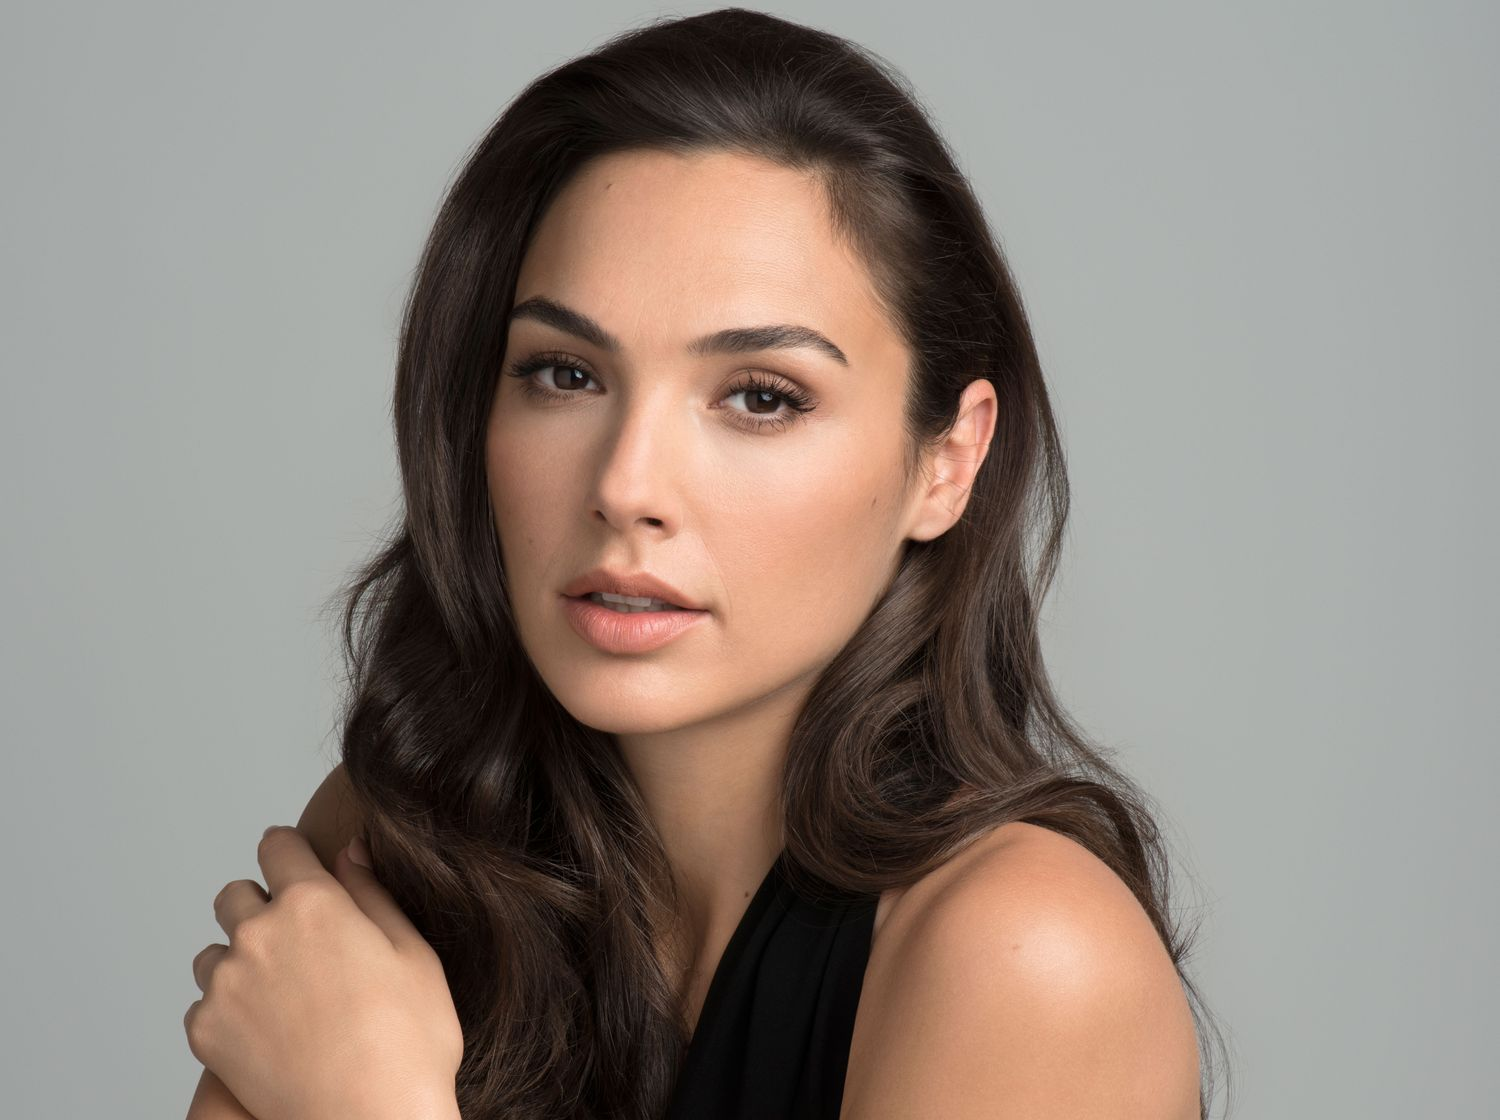 Gal Gadot earned a  million dollar salary, leaving the net worth at 5 million in 2017